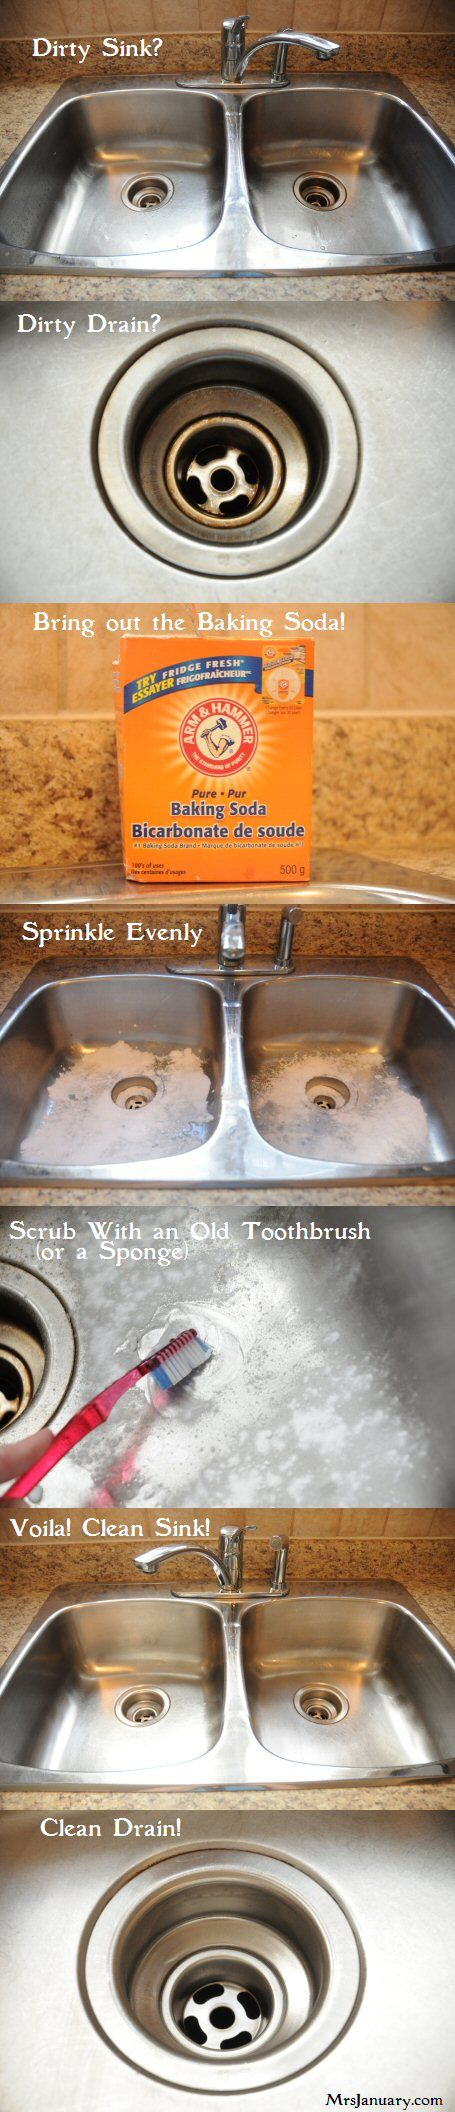 Clean A Stainless Steel Sink With Baking Soda 37 Ways To Give Your Kitchen A Deep Clean